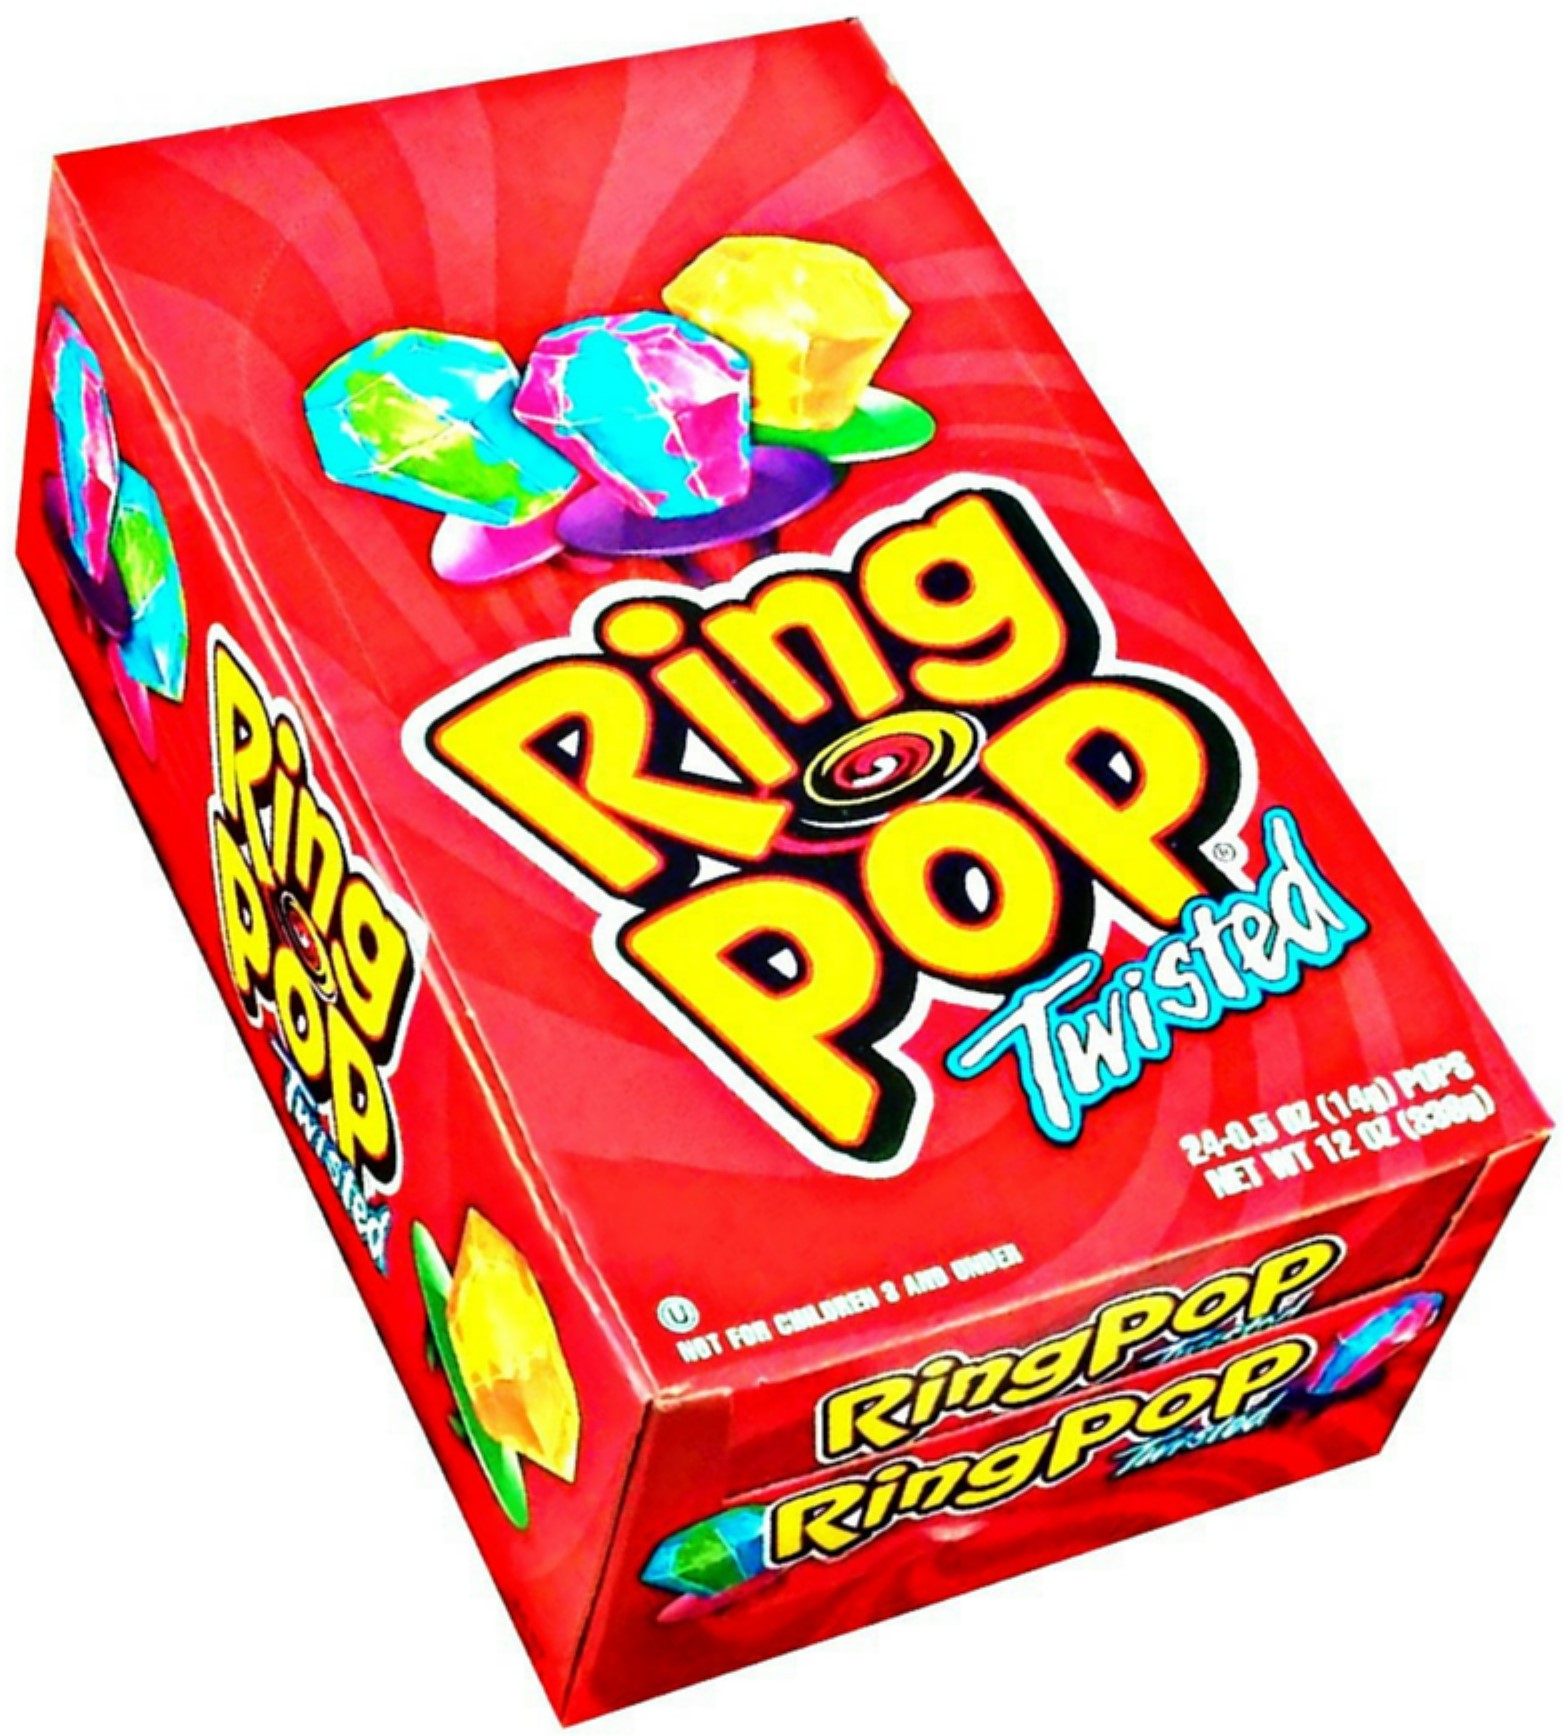 3 Pack - Ring Pop Twisted Fruit 24 ct